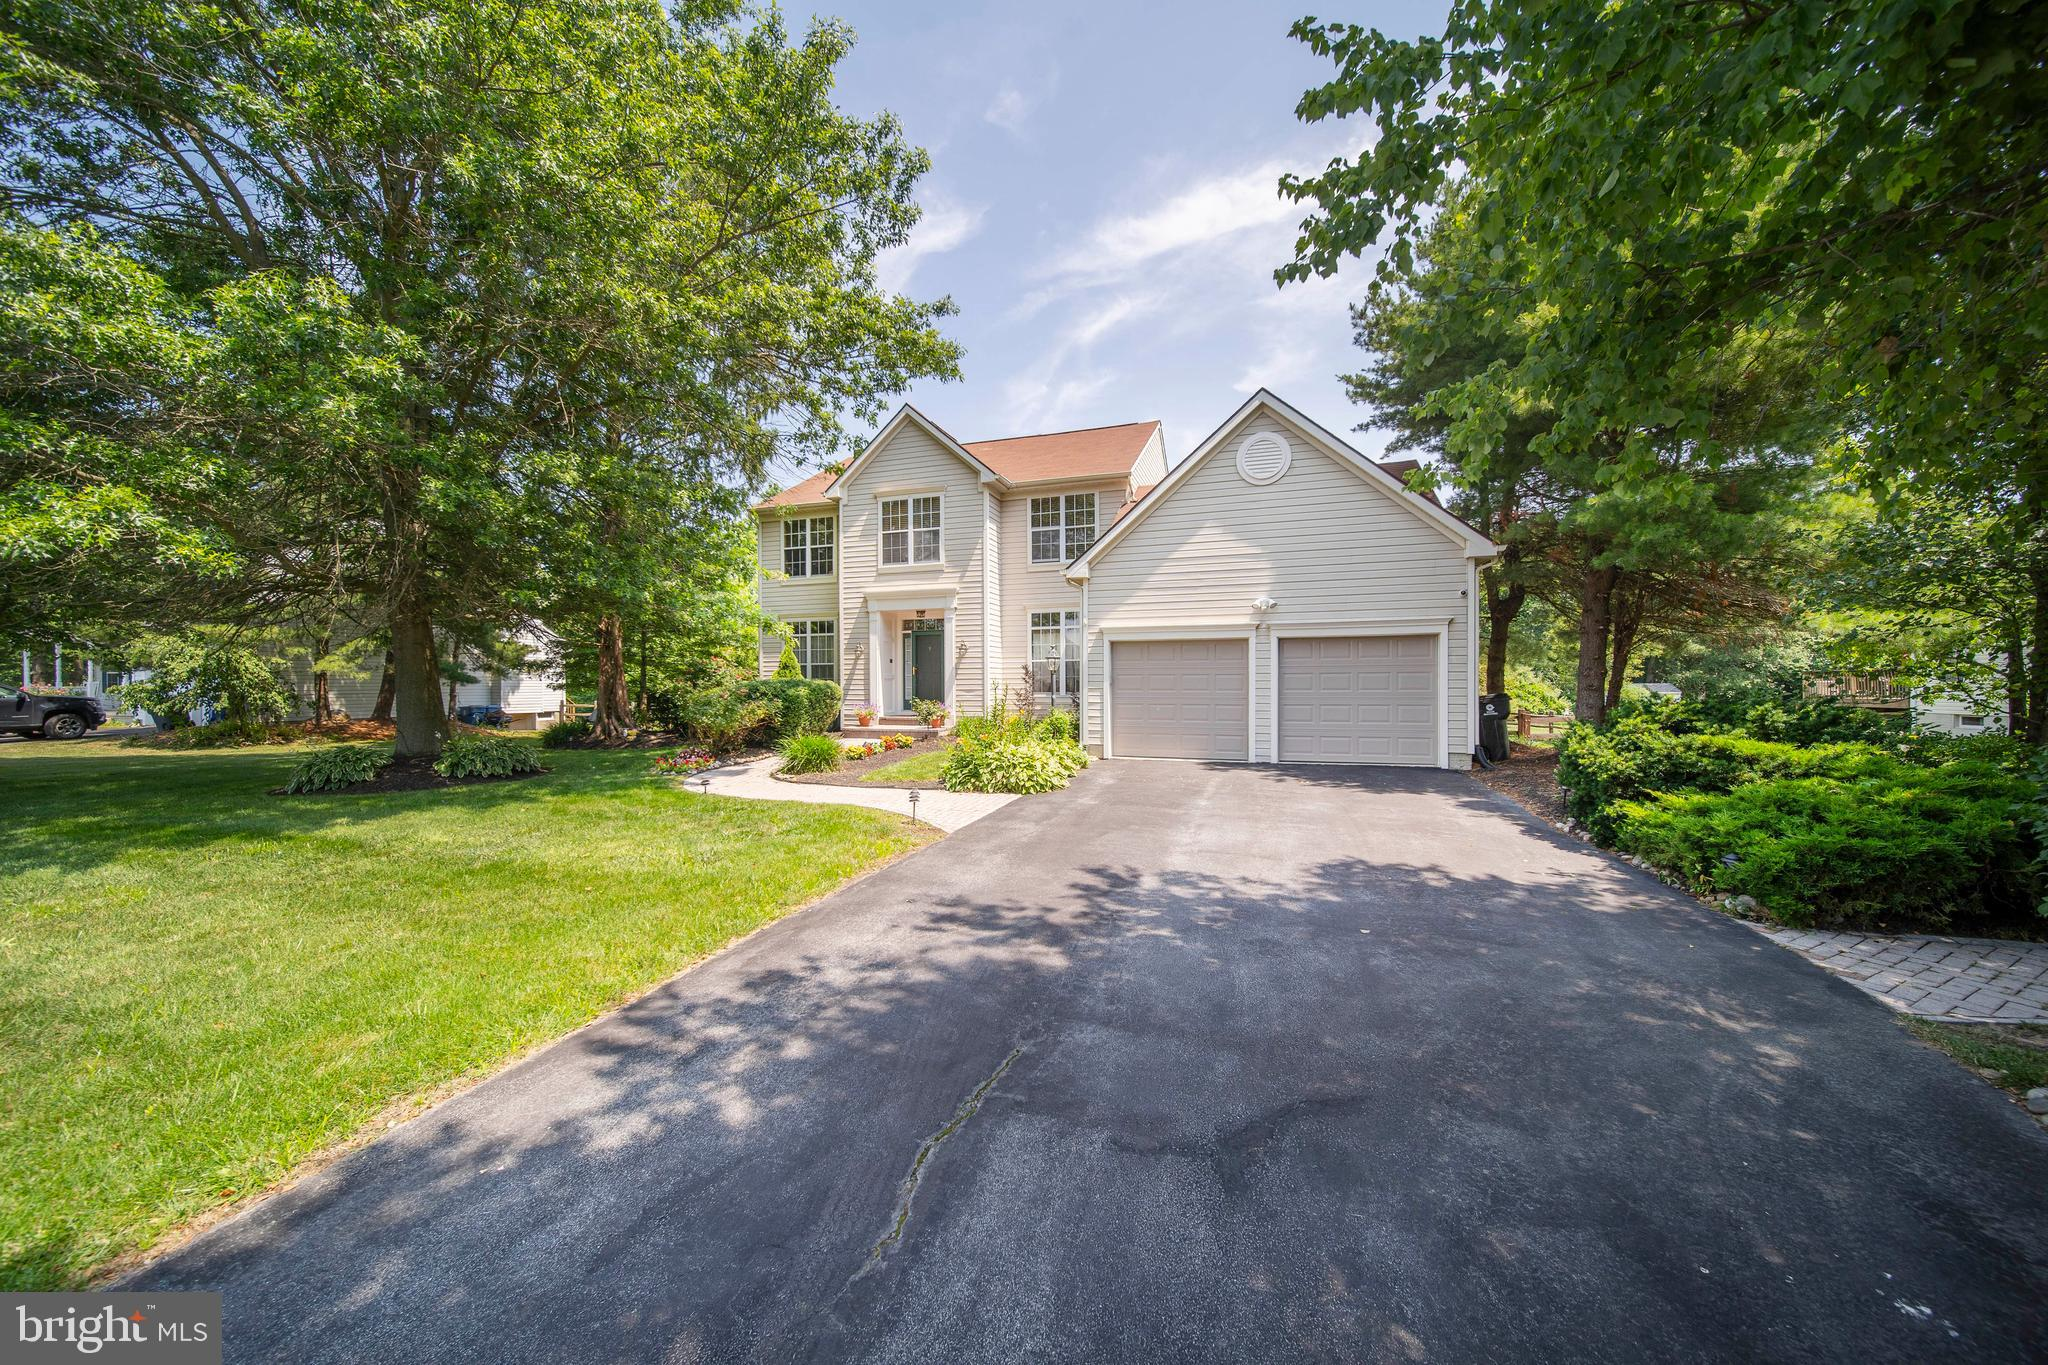 Showings start on 7/11. Some lucky buyer is going to own this beautifully maintained home. Will it b